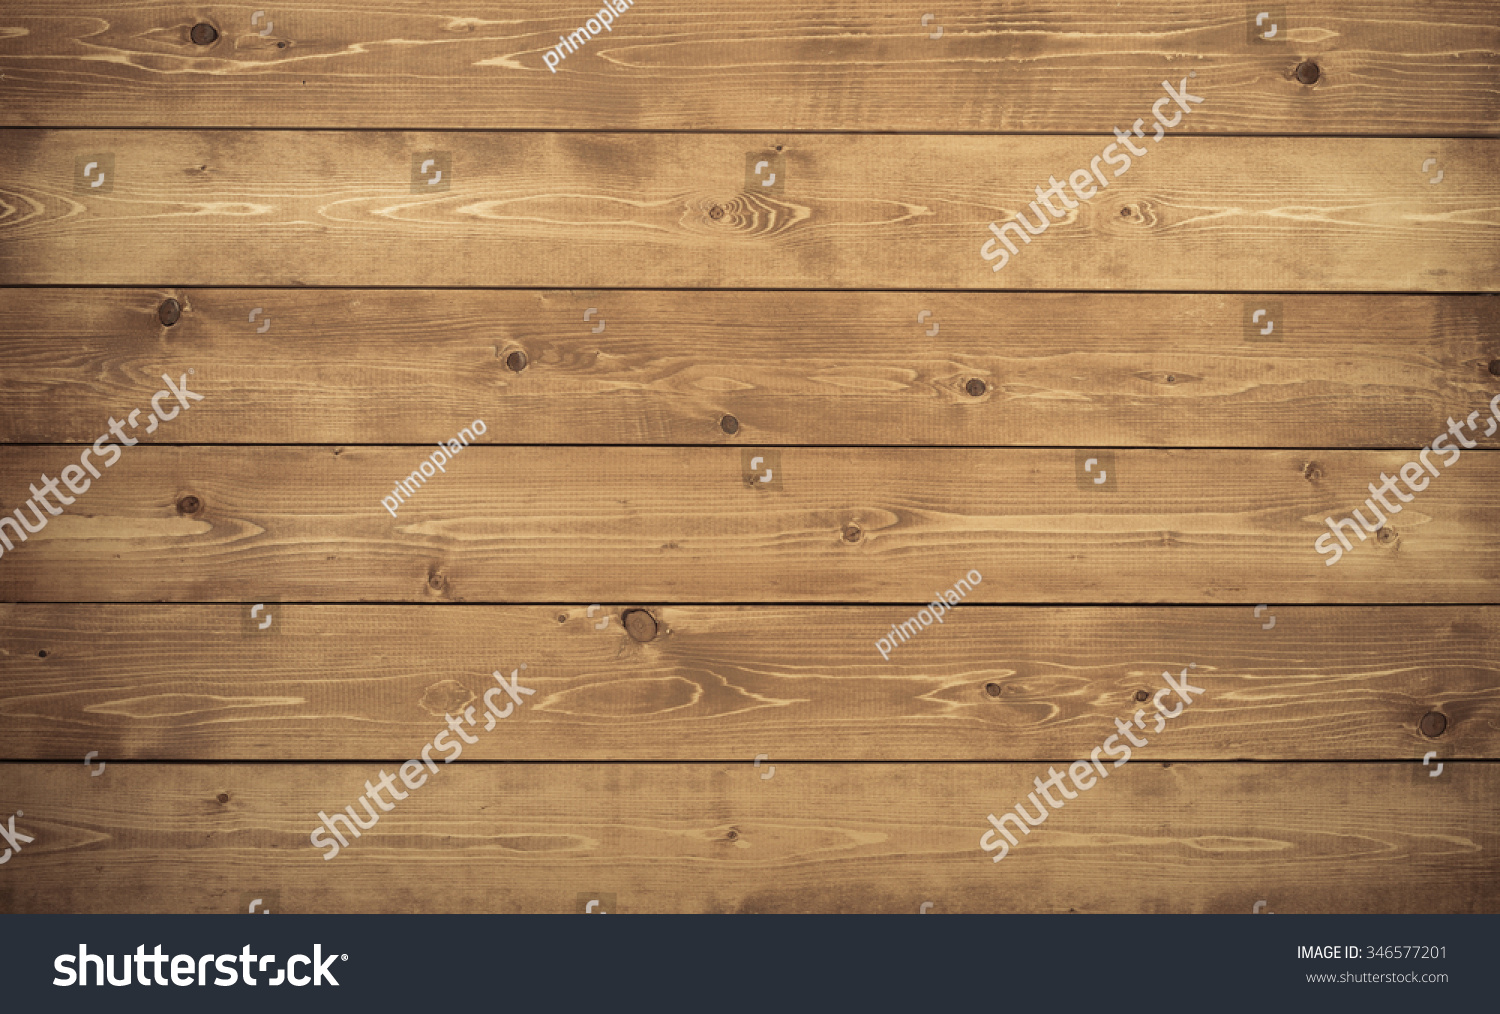 Wood table top texture - Wood Texture Background Hardwood Wood Grain Organic Material Grunge Style Vintage Wooden